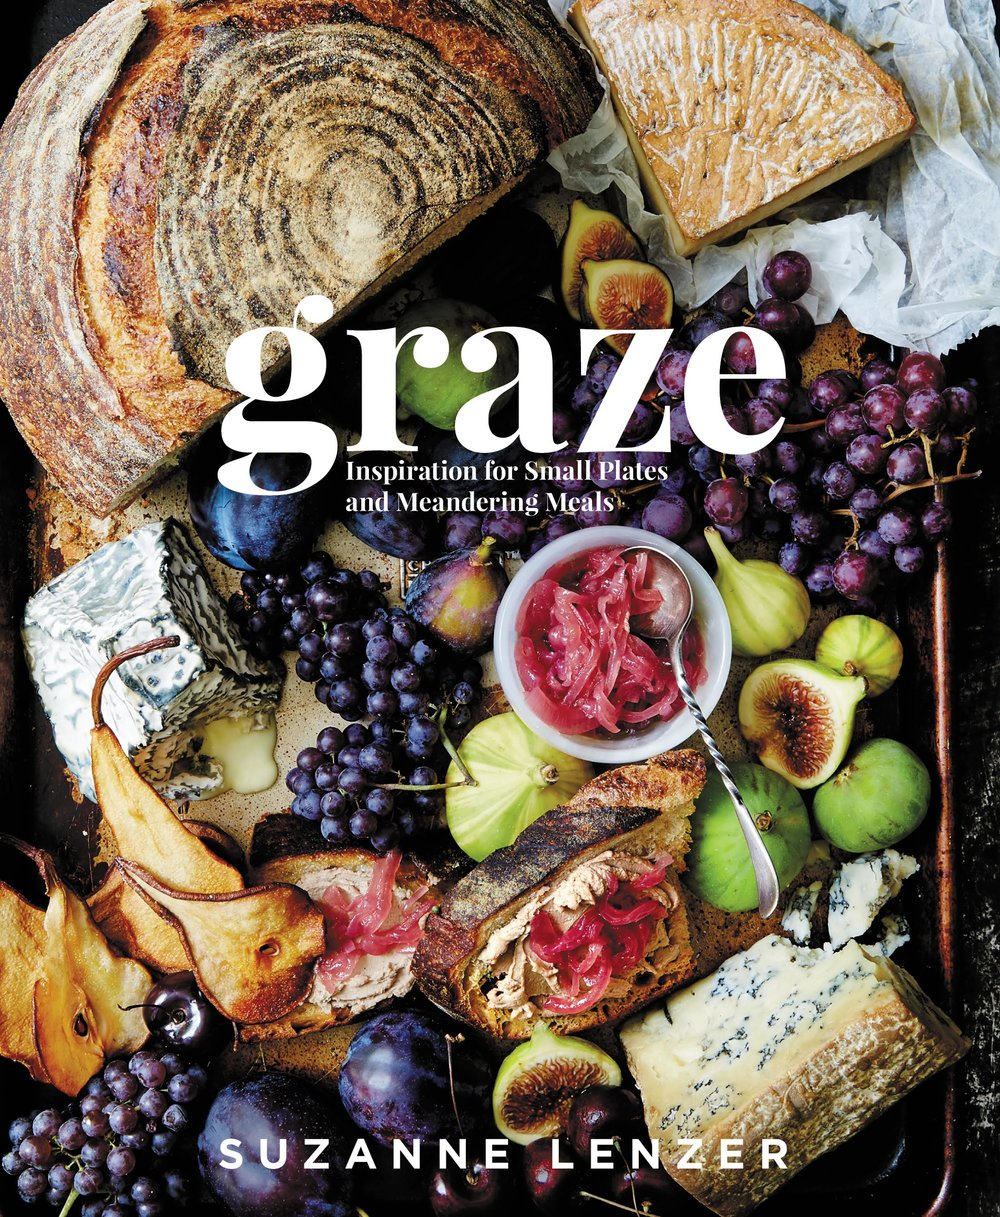 Graze cookbook, published July 2017 by Rodale